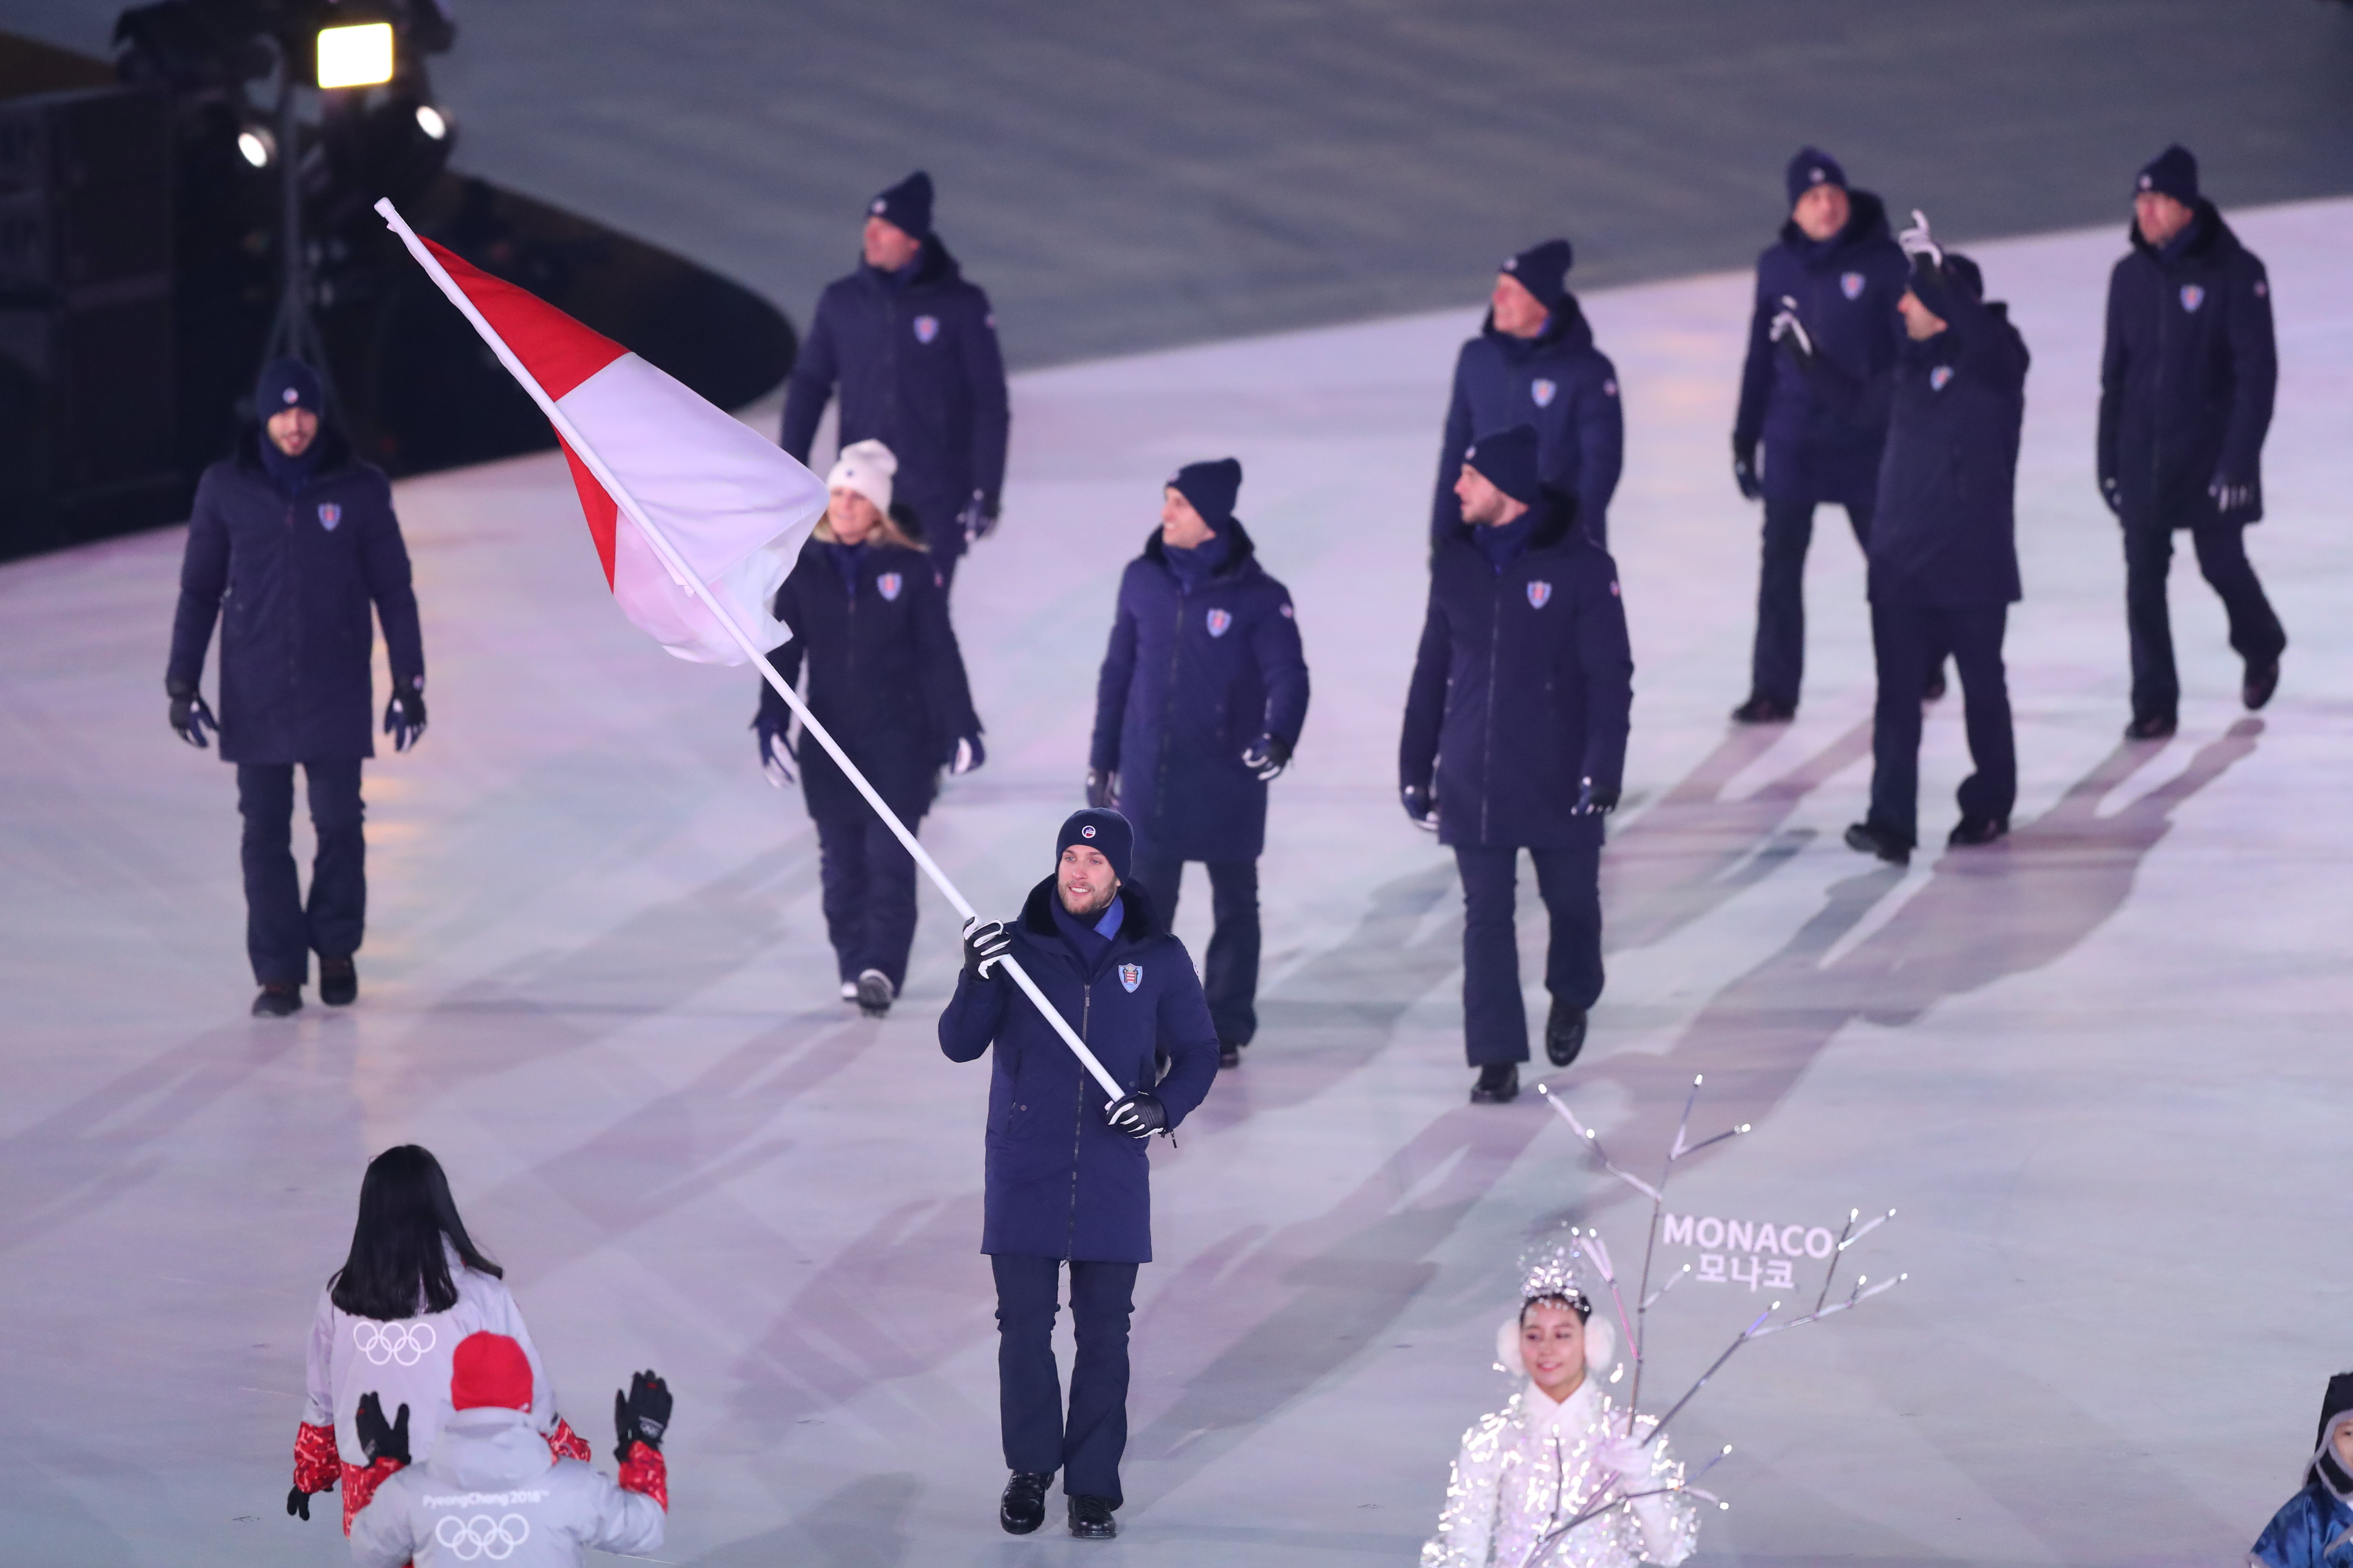 2018 Winter Olympic Games - Opening Ceremony  MONACO,   PYEONGCHANG-GUN, SOUTH KOREA - FEBRUARY 09: Flag bearer Rudy Rinaldi of Monaco leads the team out during the Opening Ceremony of the PyeongChang 2018 Winter Olympic Games at PyeongChang Olympic Stadium on February 9, 2018 in Pyeongchang-gun, South Korea. XXIII. OLYMPIC WINTER GAMES PYEONGCHANG 2018: OPENING CEREMONY,  PyeongChang, Korea, Winter Olympics; PyeongChang Olympic Stadium, on 9. February 2018, fee liable image, copyright © ATP / OSADA Yohei  Featuring: Rudy Rinaldi of Monaco Where: Pyeongchang, Gangwon Province, South Korea When: 09 Feb 2018 Credit: ATP/WENN.com  **Not available for publication in Germany or France. No Contact Music.**